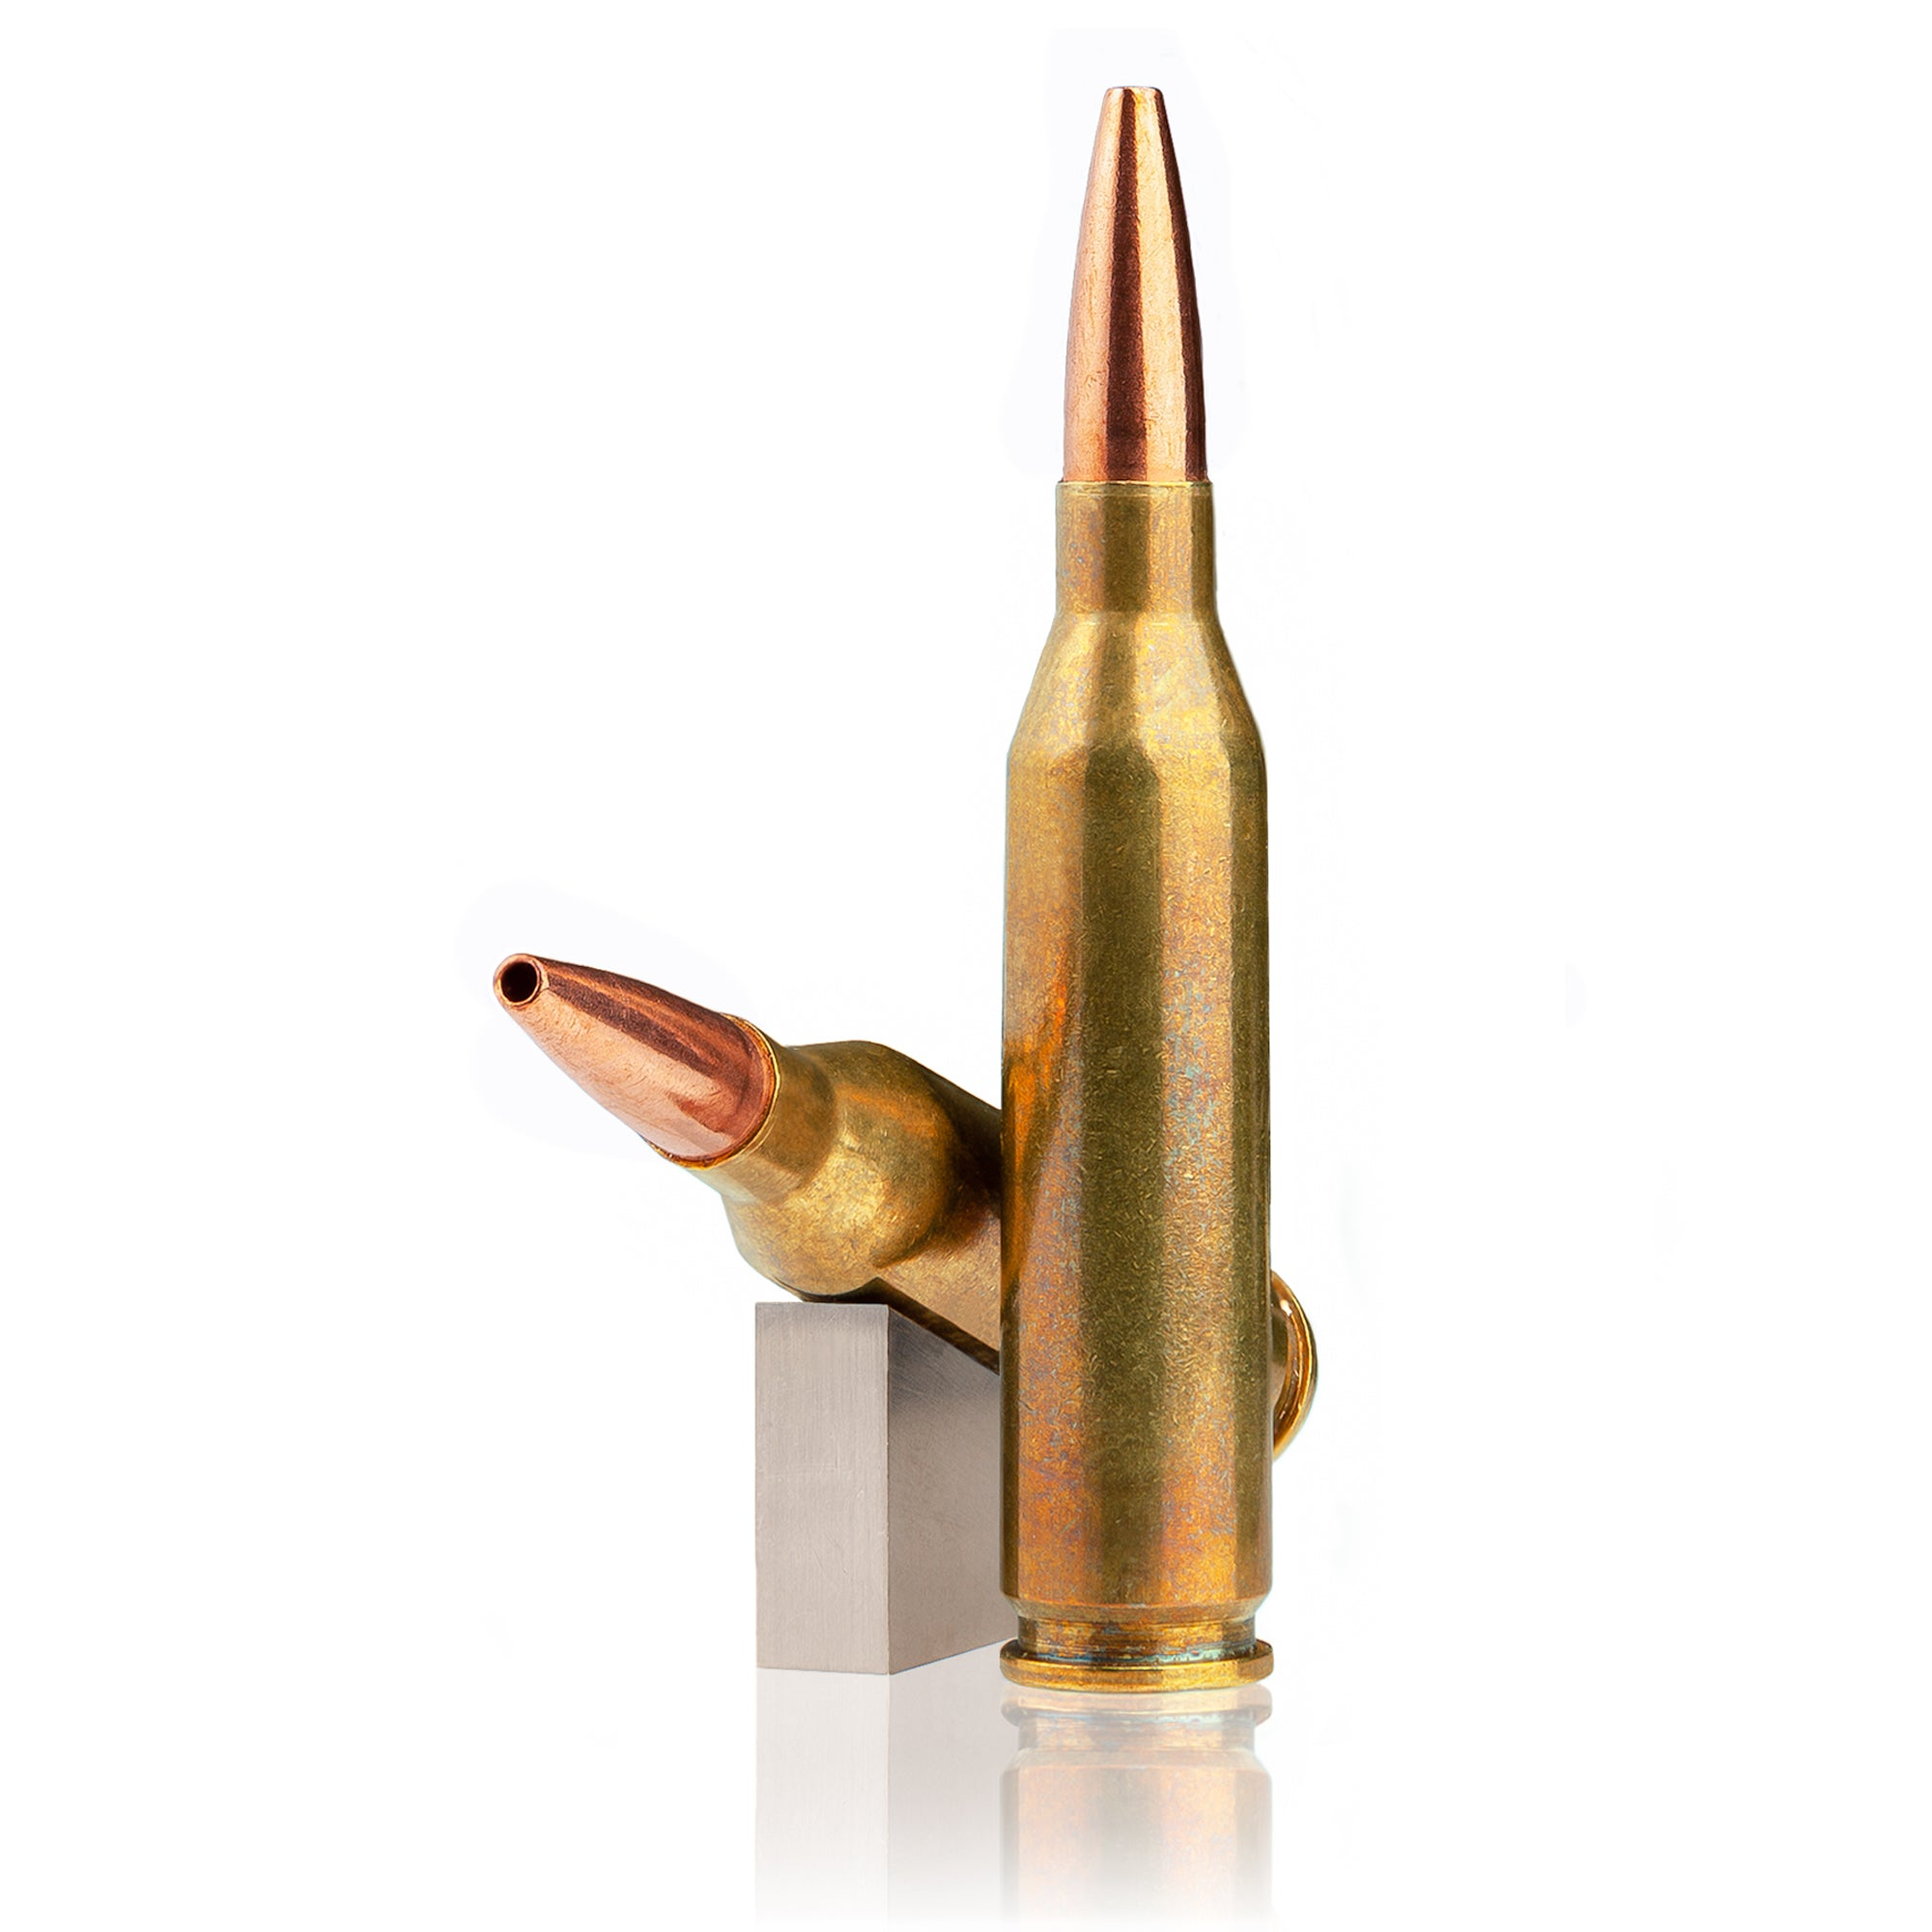 243 Winchester 85gr High Velocity Controlled Chaos (CCCu) Ammunition